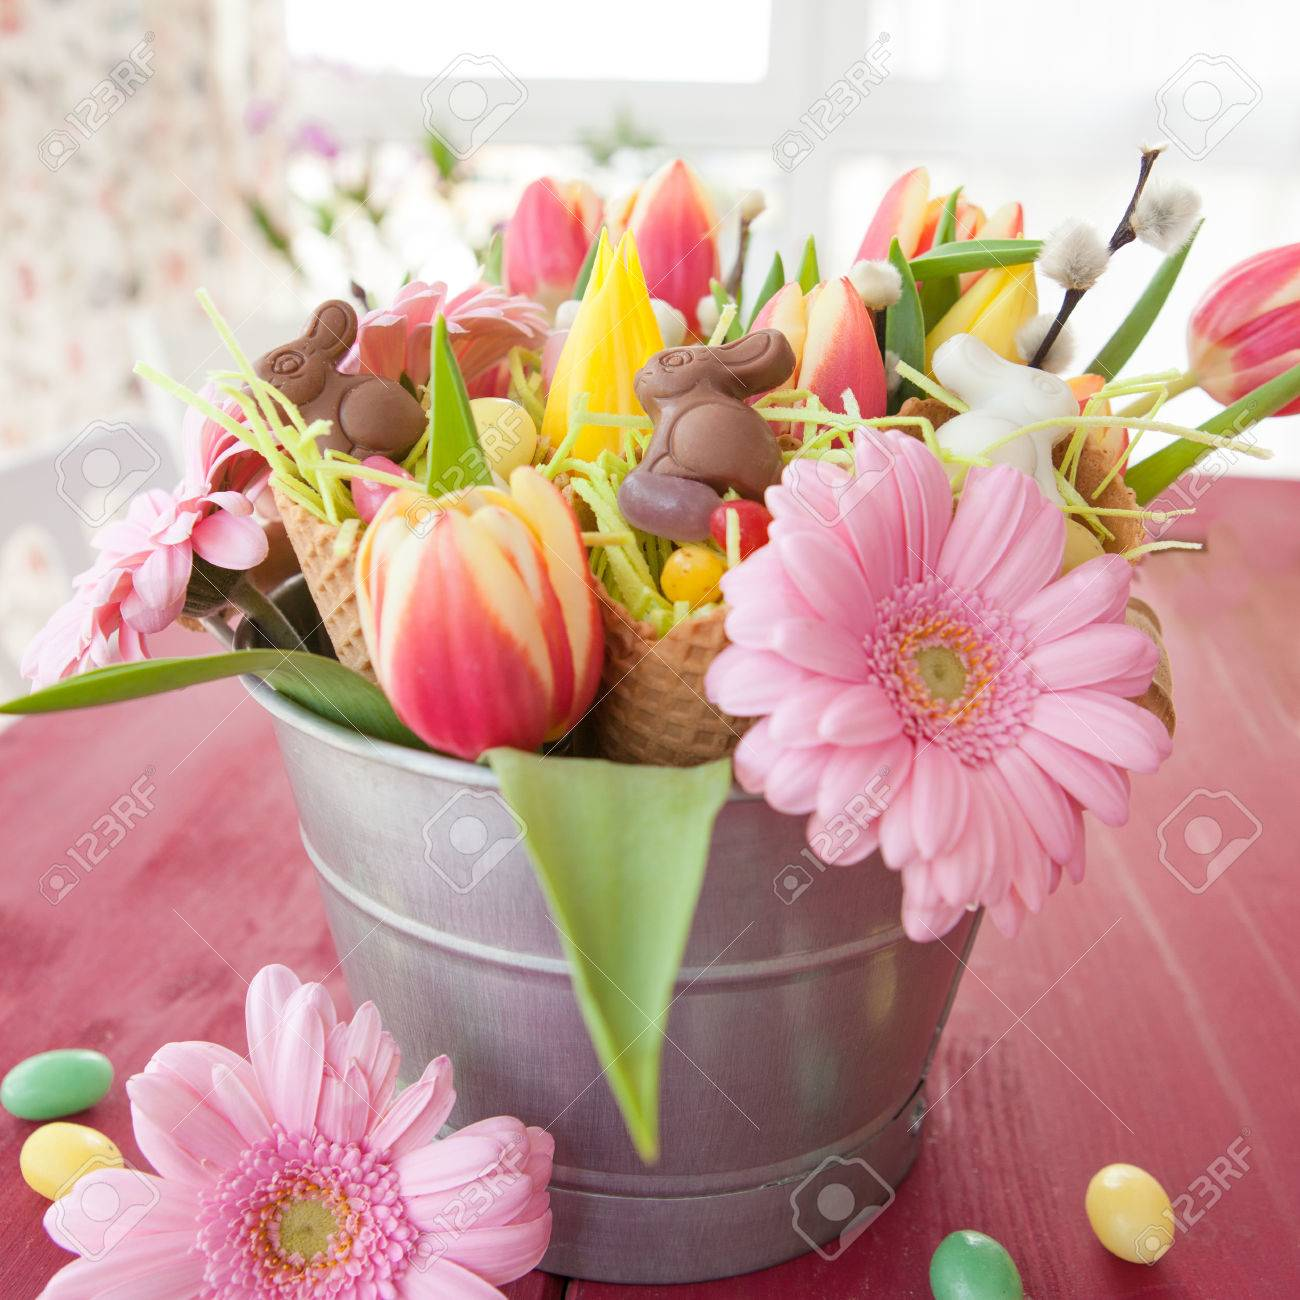 Colorful spring flowers with fun easter candy and chocolates stock colorful spring flowers with fun easter candy and chocolates stock photo 75309234 izmirmasajfo Gallery